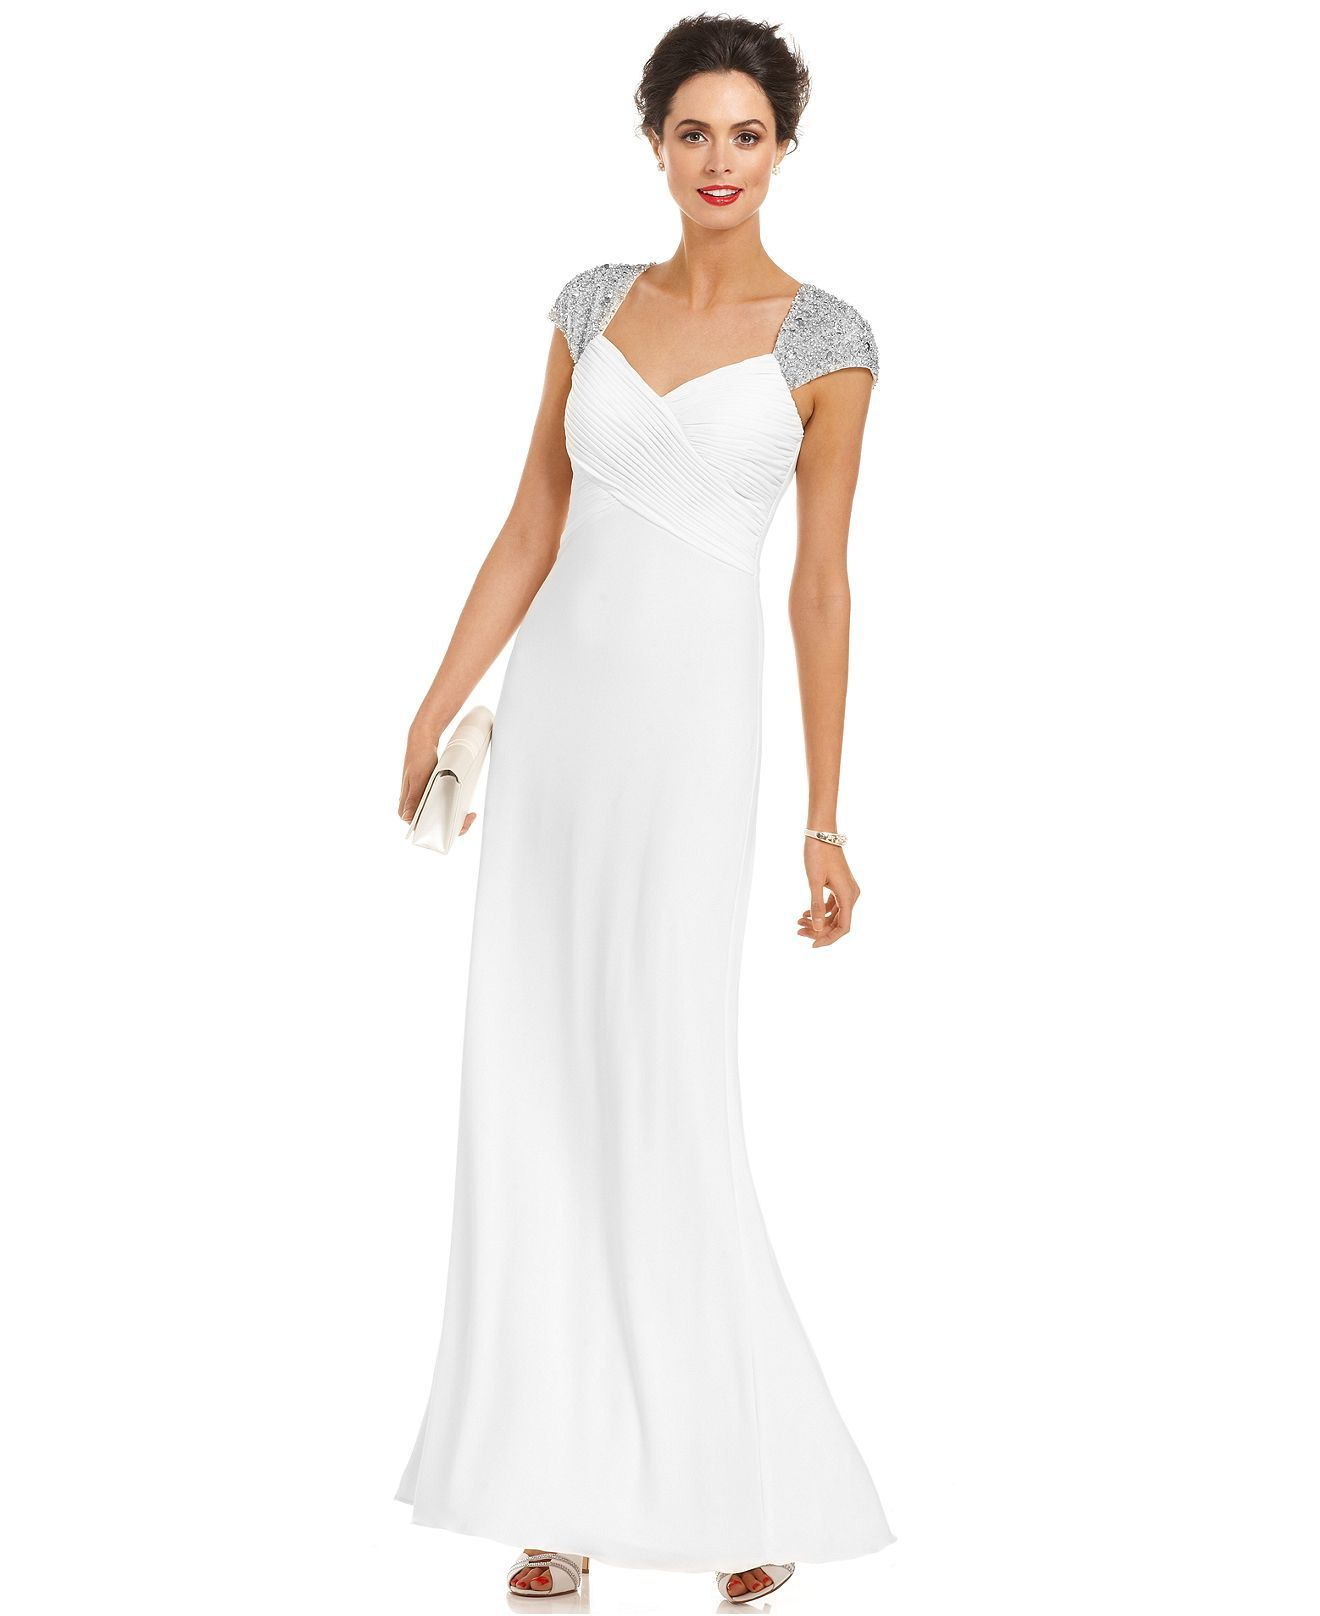 JS Boutique Dress, Cap-Sleeve Beaded Pleated Evening Gown - Womens ...